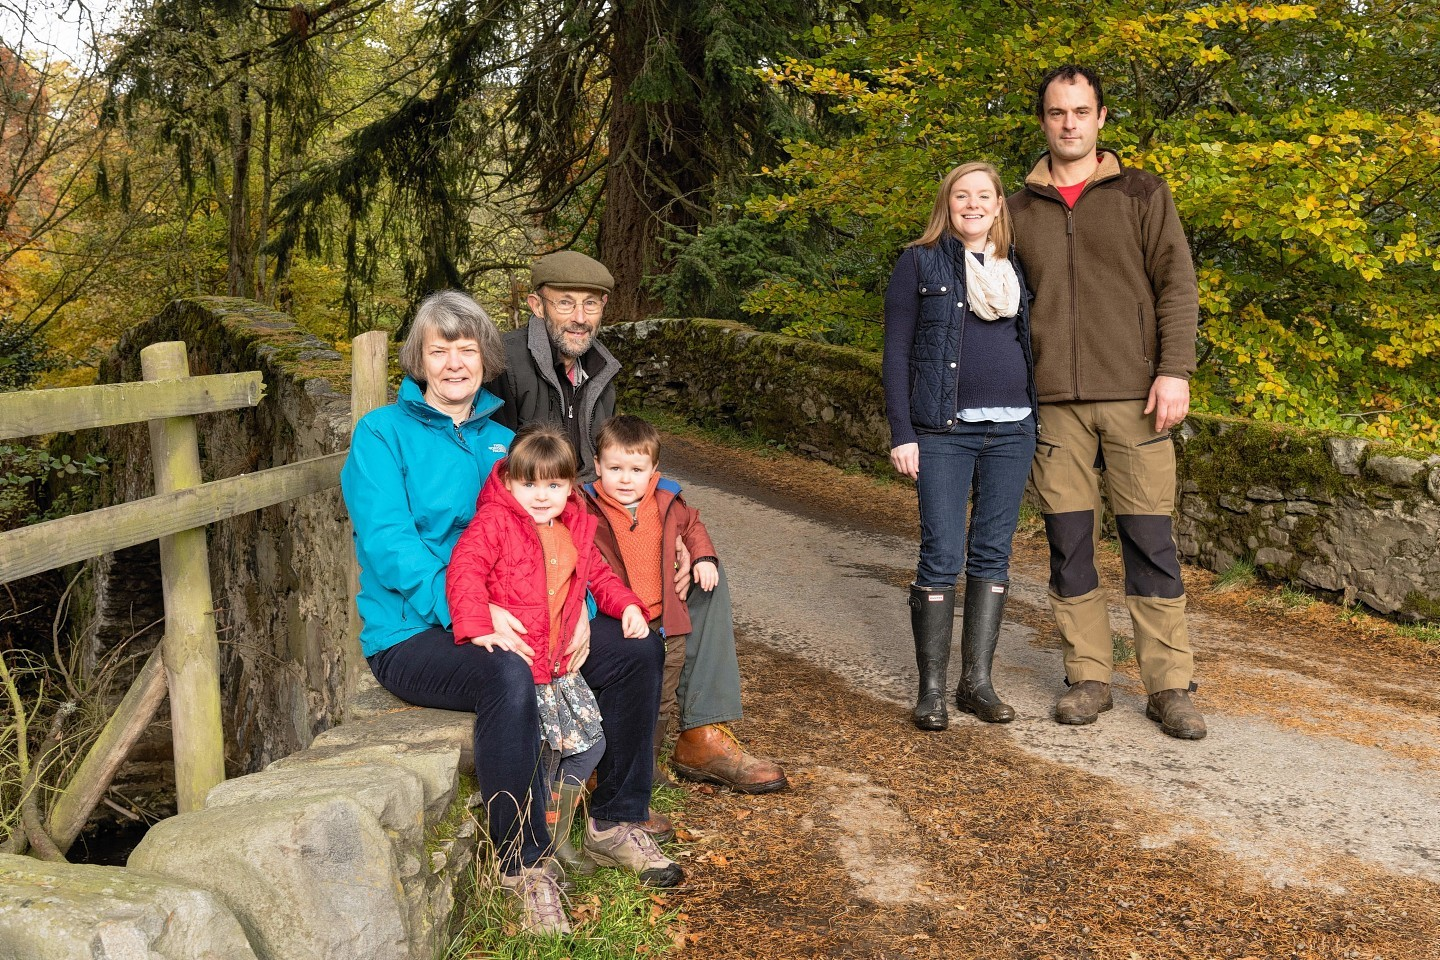 David Girvan (far right) with his wife Barbara, children Lucy and Angus, and his parents Lindsay and Mamie